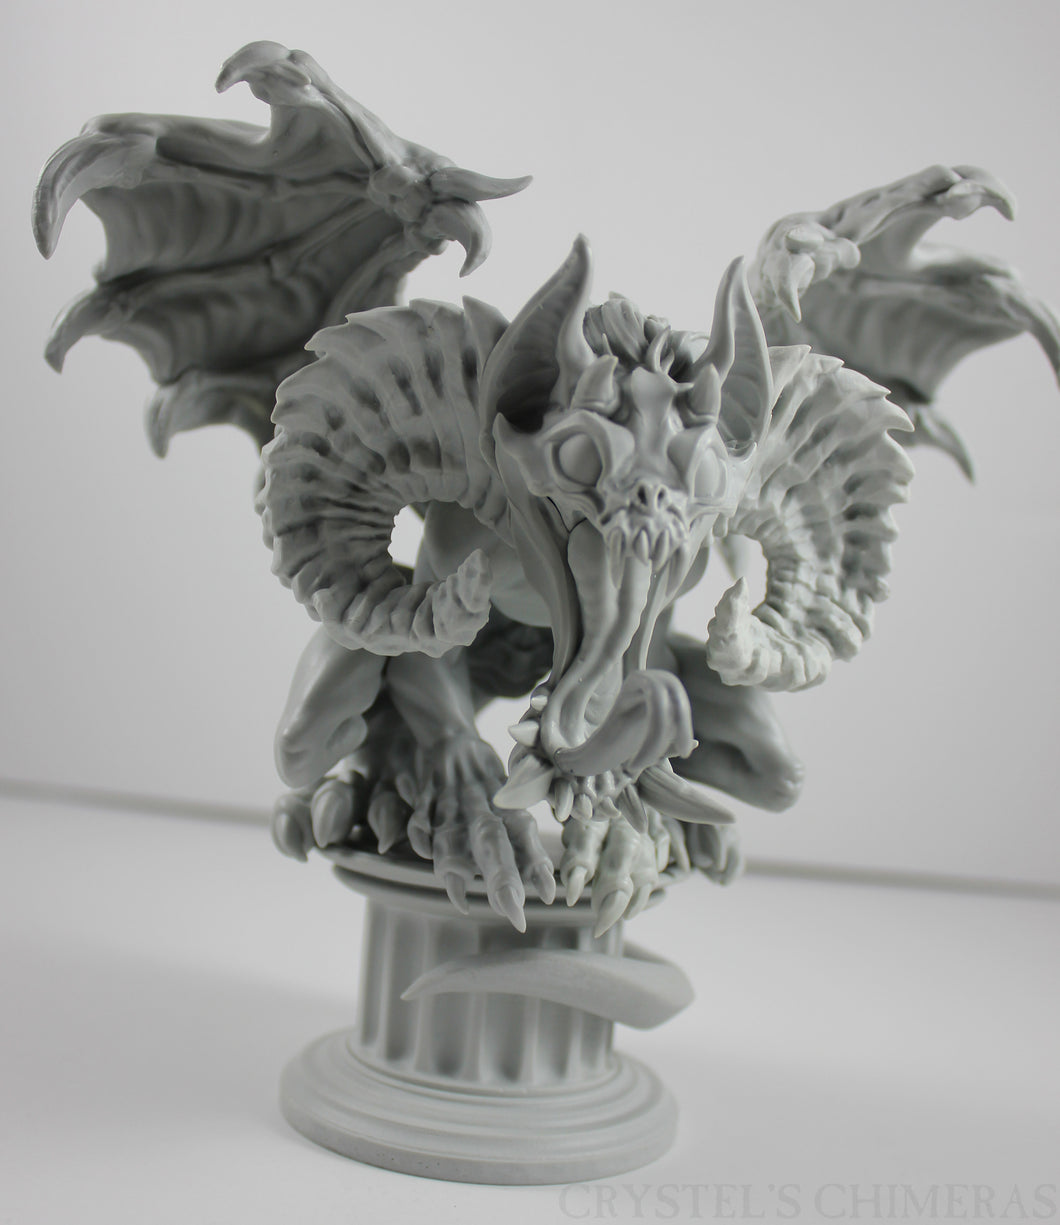 Gargoyle (limited edition)